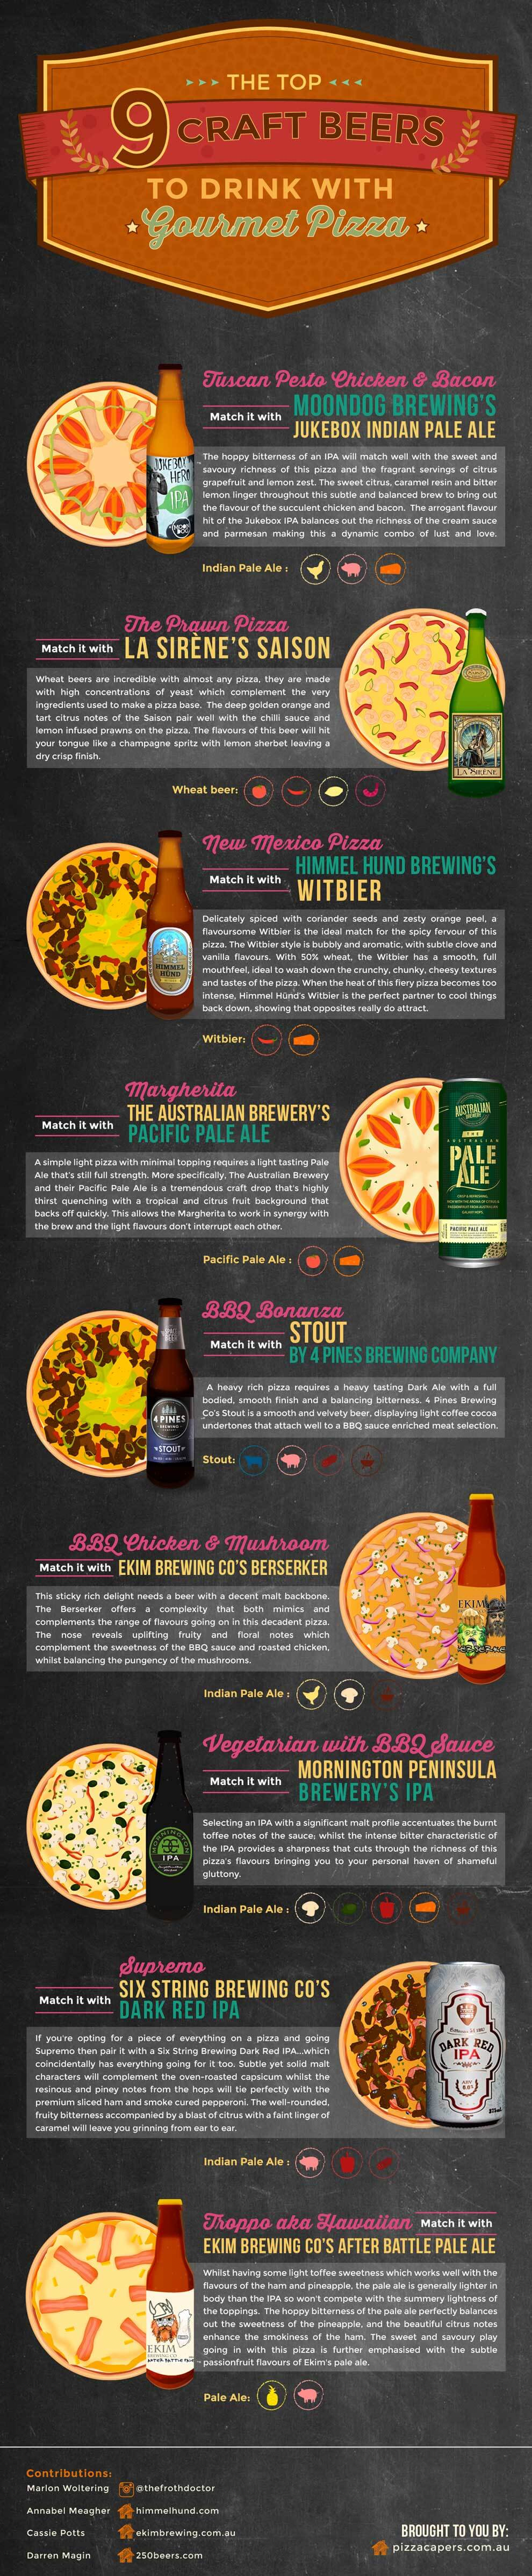 The Top 9 Craft Beers to Drink with Gourmet Pizza